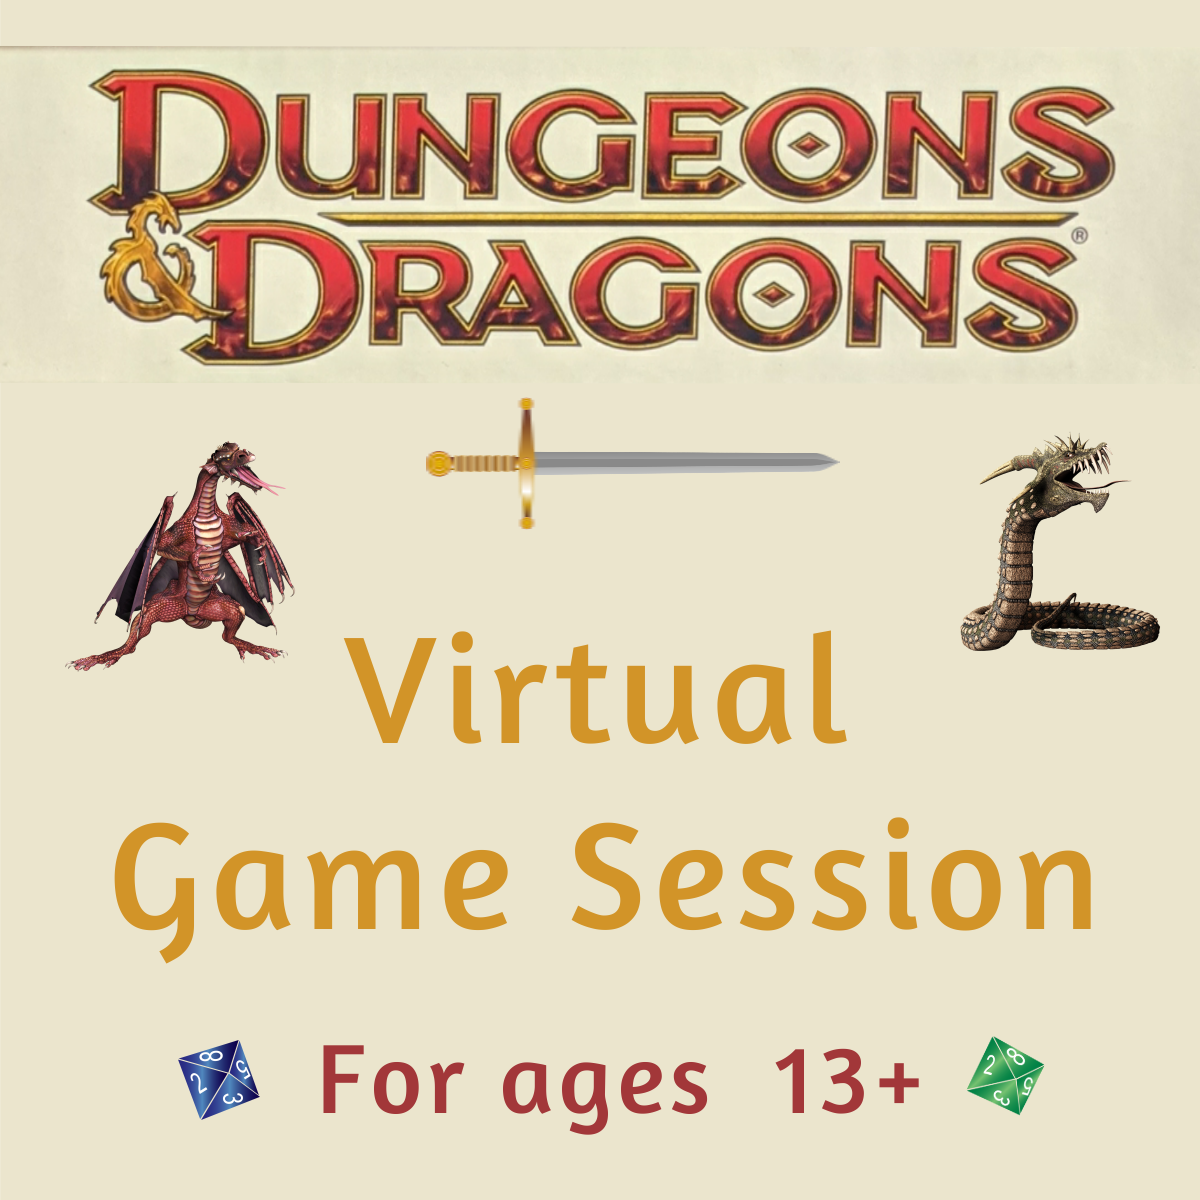 Dungeons and Dragons Virtual Game Session for ages 13+ with Logo and dragons and dice